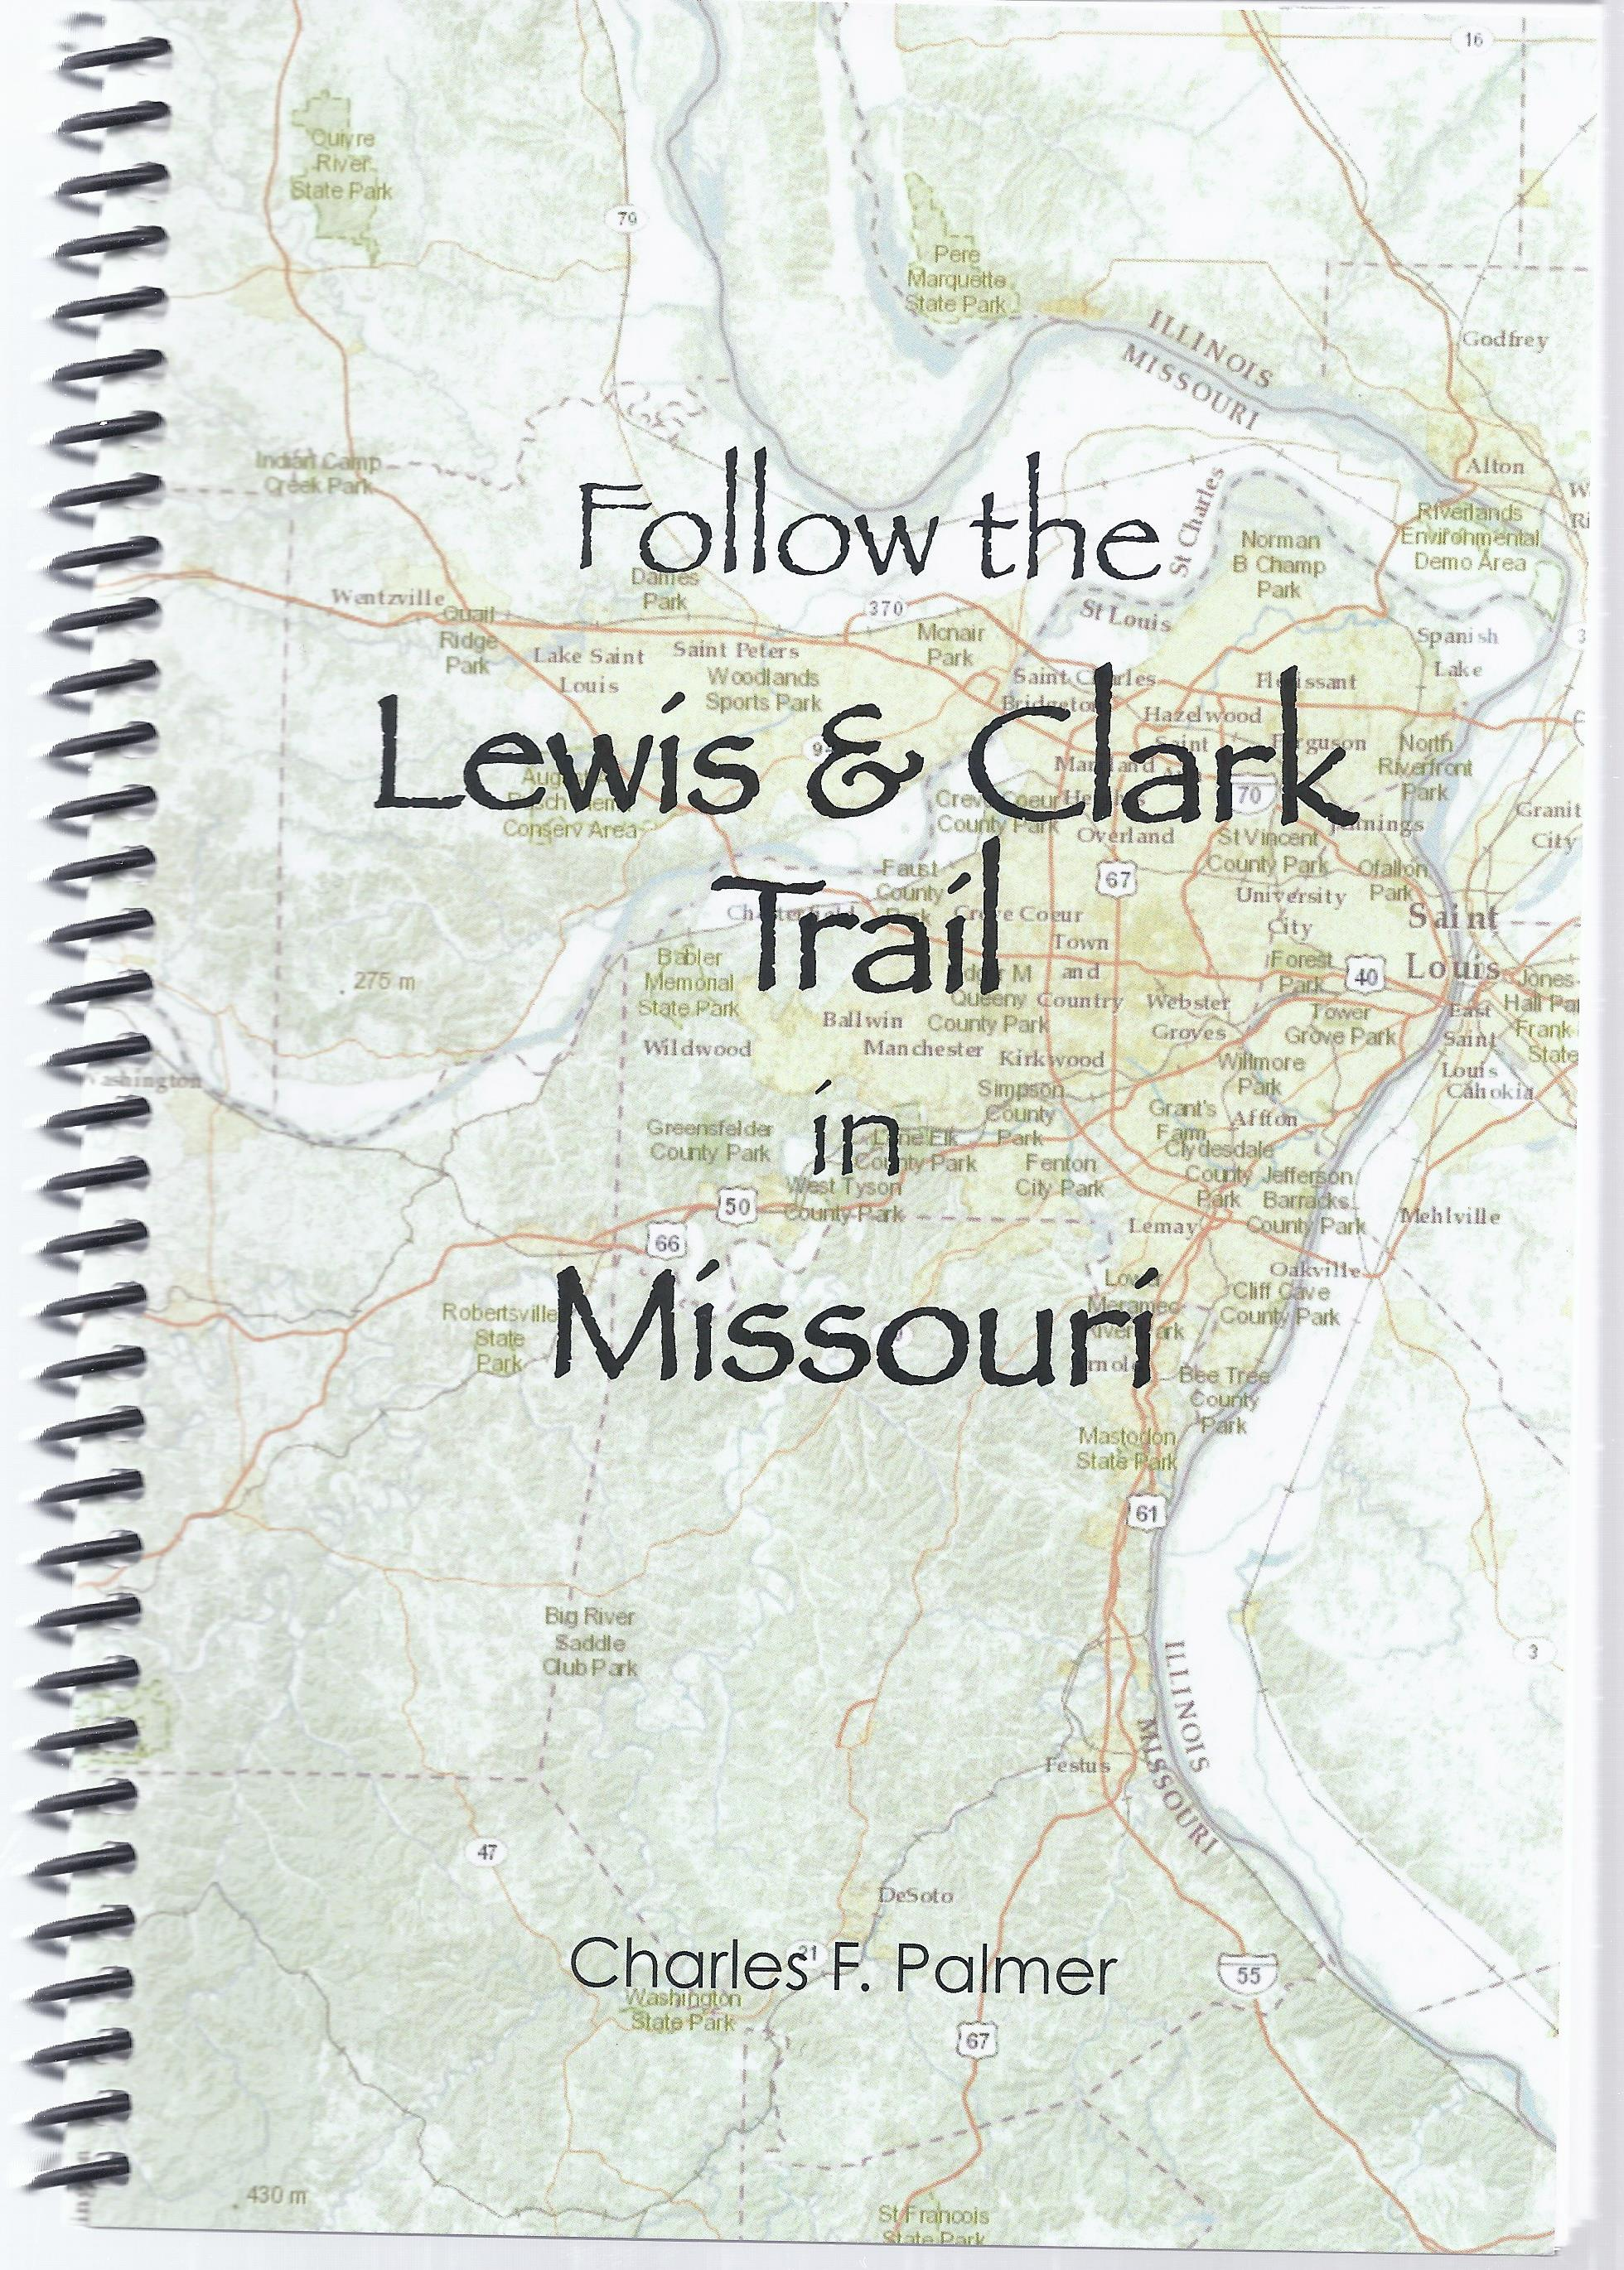 Follow the Lewis & Clark Trail in MO